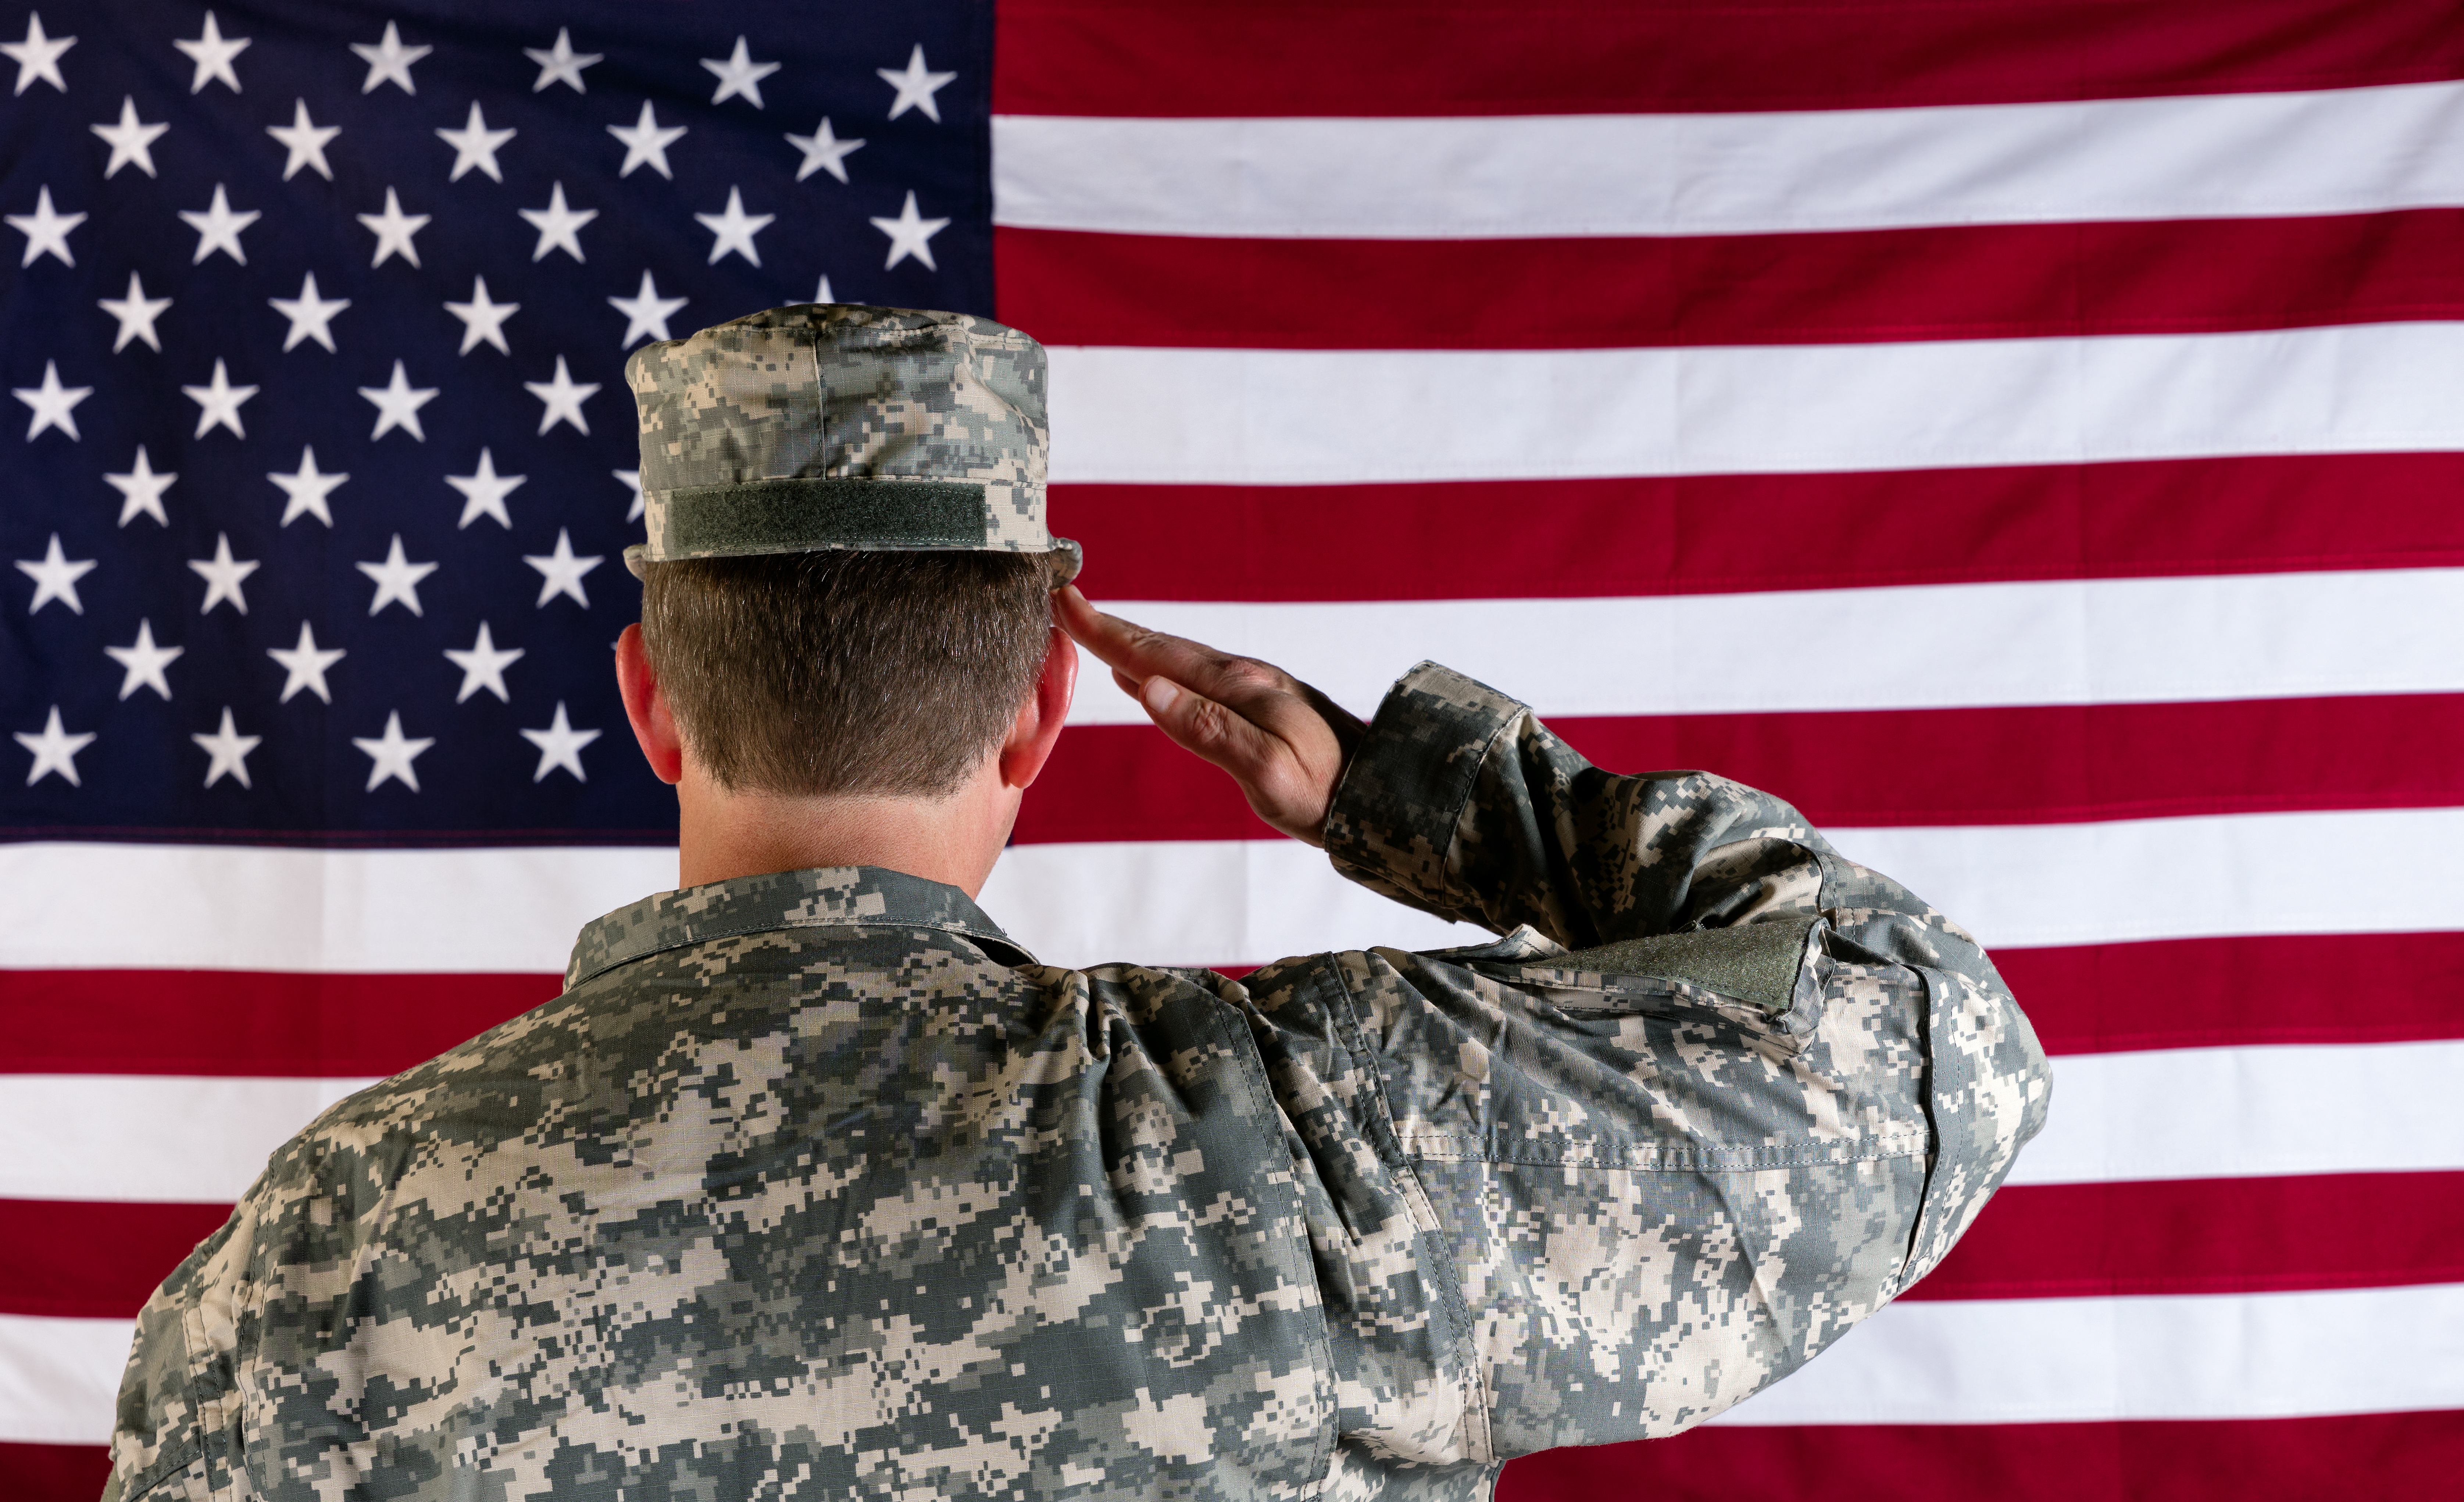 How To Report A Person Abusing Va Benefits